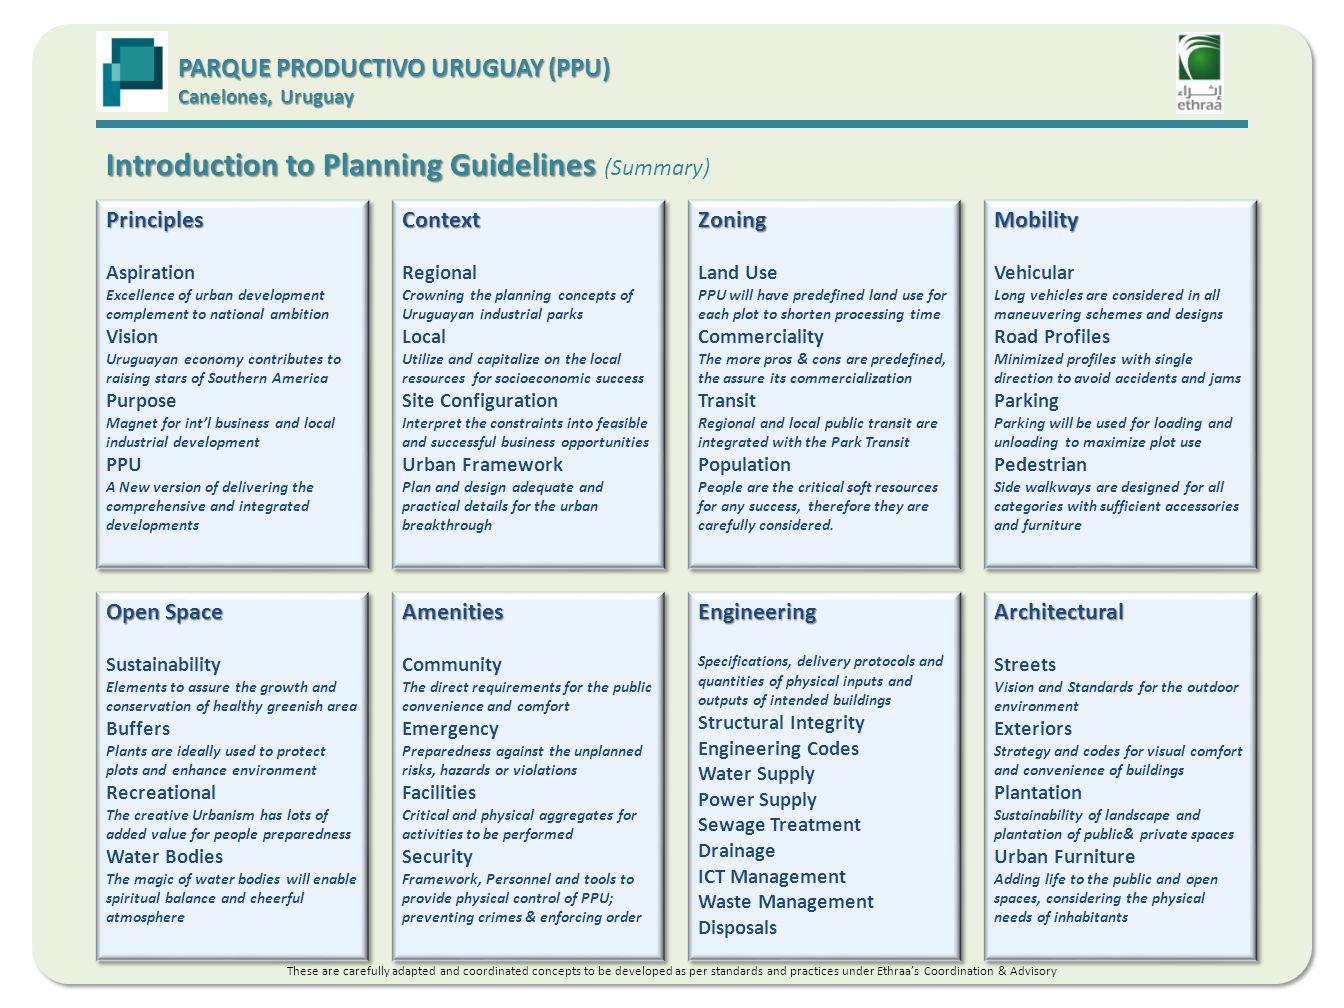 Introduction to Planning Guidelines Introduction to Planning Guidelines (Summary) PARQUE PRODUCTIVO URUGUAY (PPU) Canelones, Uruguay Principles Aspiration Excellence of urban development complement to national ambition Vision Uruguayan economy contributes to raising stars of Southern America Purpose Magnet for intl business and local industrial development PPU A New version of delivering the comprehensive and integrated developmentsPrinciples Aspiration Excellence of urban development complement to national ambition Vision Uruguayan economy contributes to raising stars of Southern America Purpose Magnet for intl business and local industrial development PPU A New version of delivering the comprehensive and integrated developments Open Space Sustainability Elements to assure the growth and conservation of healthy greenish area Buffers Plants are ideally used to protect plots and enhance environment Recreational The creative Urbanism has lots of added value for people preparedness Water Bodies The magic of water bodies will enable spiritual balance and cheerful atmosphere Open Space Sustainability Elements to assure the growth and conservation of healthy greenish area Buffers Plants are ideally used to protect plots and enhance environment Recreational The creative Urbanism has lots of added value for people preparedness Water Bodies The magic of water bodies will enable spiritual balance and cheerful atmosphere Context Regional Crowning the planning concepts of Uruguayan industrial parks Local Utilize and capitalize on the local resources for socioeconomic success Site Configuration Interpret the constraints into feasible and successful business opportunities Urban Framework Plan and design adequate and practical details for the urban breakthroughContext Regional Crowning the planning concepts of Uruguayan industrial parks Local Utilize and capitalize on the local resources for socioeconomic success Site Configuration Interpret the constraints into feasible and successful business opportunities Urban Framework Plan and design adequate and practical details for the urban breakthrough Amenities Community The direct requirements for the public convenience and comfort Emergency Preparedness against the unplanned risks, hazards or violations Facilities Critical and physical aggregates for activities to be performed Security Framework, Personnel and tools to provide physical control of PPU; preventing crimes & enforcing orderAmenities Community The direct requirements for the public convenience and comfort Emergency Preparedness against the unplanned risks, hazards or violations Facilities Critical and physical aggregates for activities to be performed Security Framework, Personnel and tools to provide physical control of PPU; preventing crimes & enforcing order Zoning Land Use PPU will have predefined land use for each plot to shorten processing time Commerciality The more pros & cons are predefined, the assure its commercialization Transit Regional and local public transit are integrated with the Park Transit Population People are the critical soft resources for any success, therefore they are carefully considered.Zoning Land Use PPU will have predefined land use for each plot to shorten processing time Commerciality The more pros & cons are predefined, the assure its commercialization Transit Regional and local public transit are integrated with the Park Transit Population People are the critical soft resources for any success, therefore they are carefully considered.